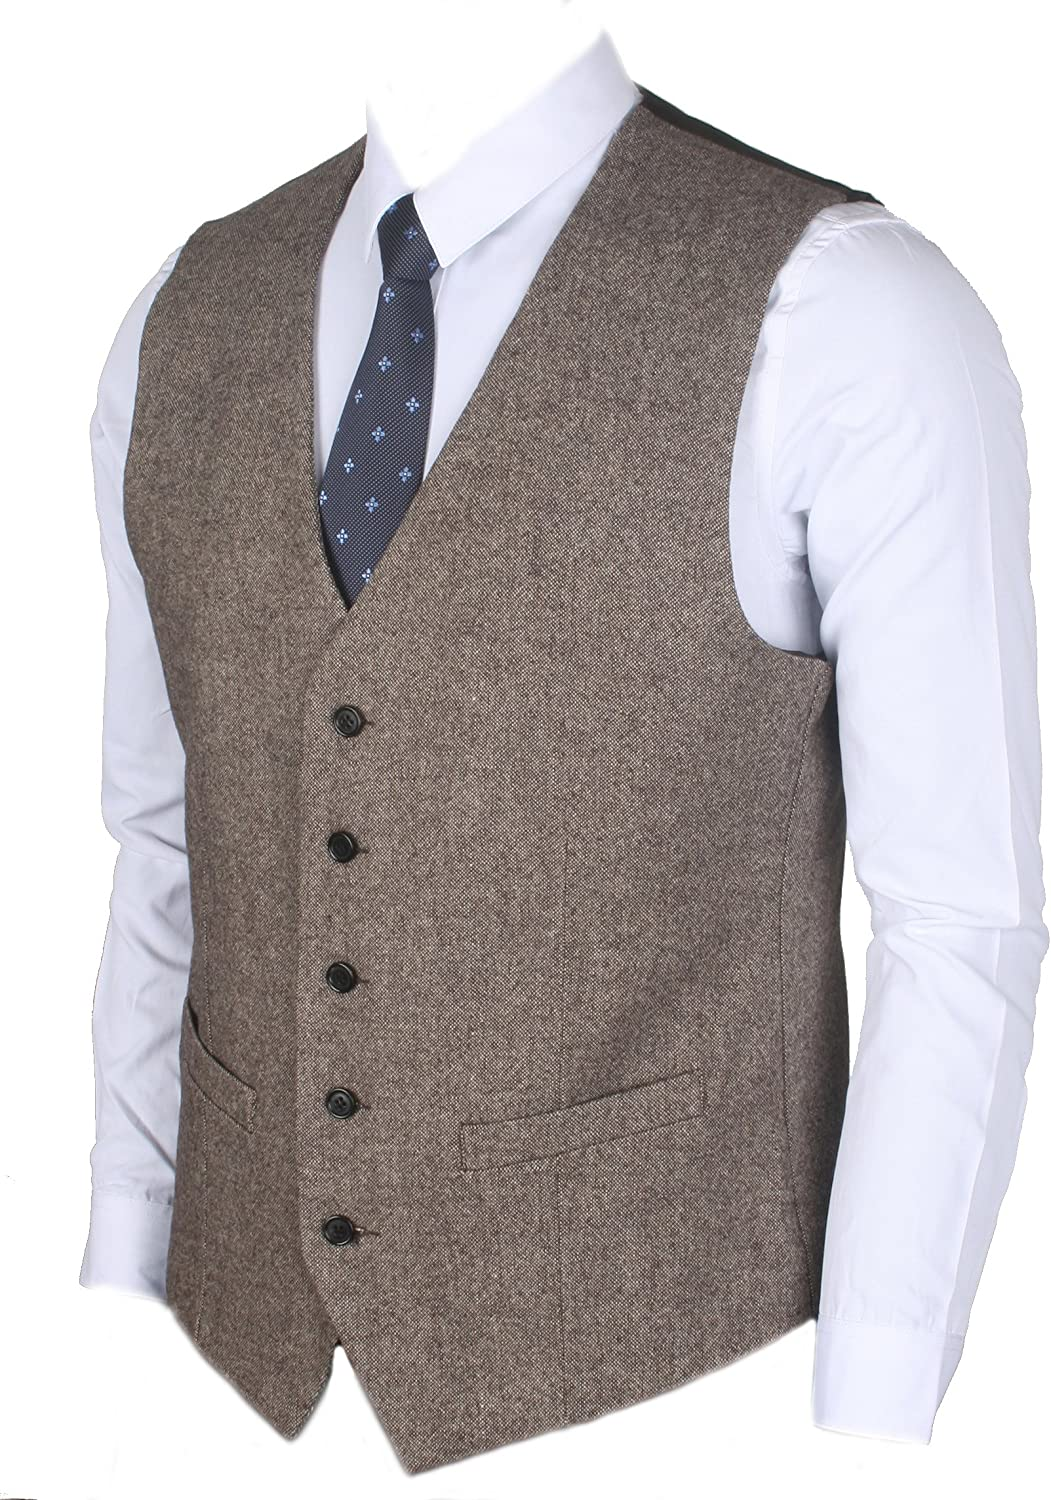 1920s Men's Fashion UK | Peaky Blinders Clothing Ruth&Boaz 2Pockets 5Buttons Wool Herringbone/Tweed Tailored Collar Suit Waistcoat £29.90 AT vintagedancer.com